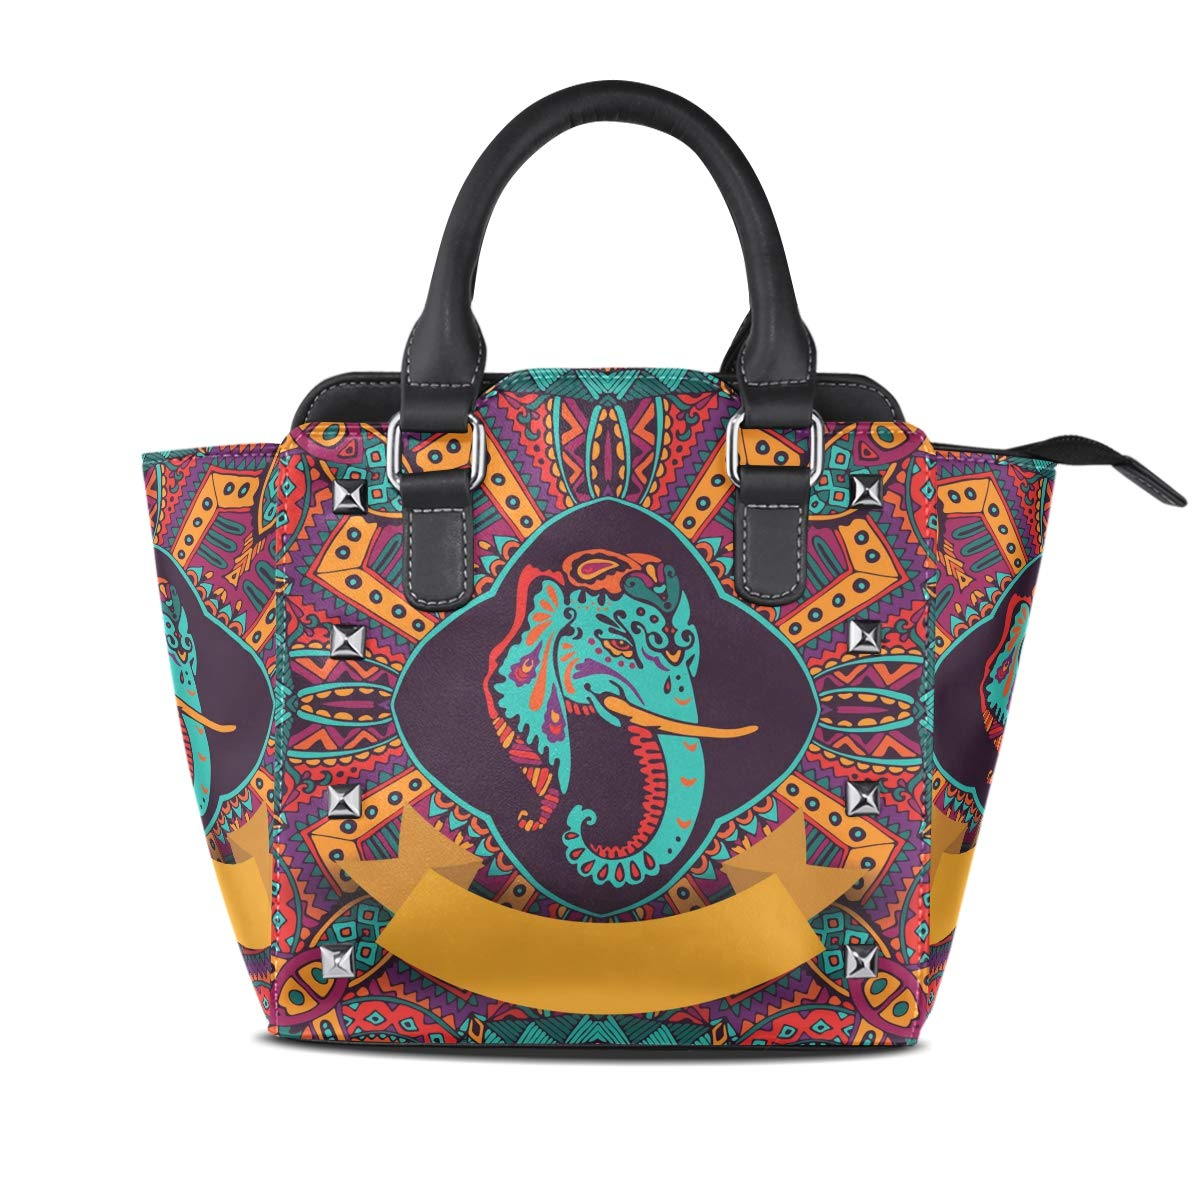 Design4 Handbag Tribal Style Elephant And Lotus Genuine Leather Tote Rivet Bag Shoulder Strap Top Handle Women